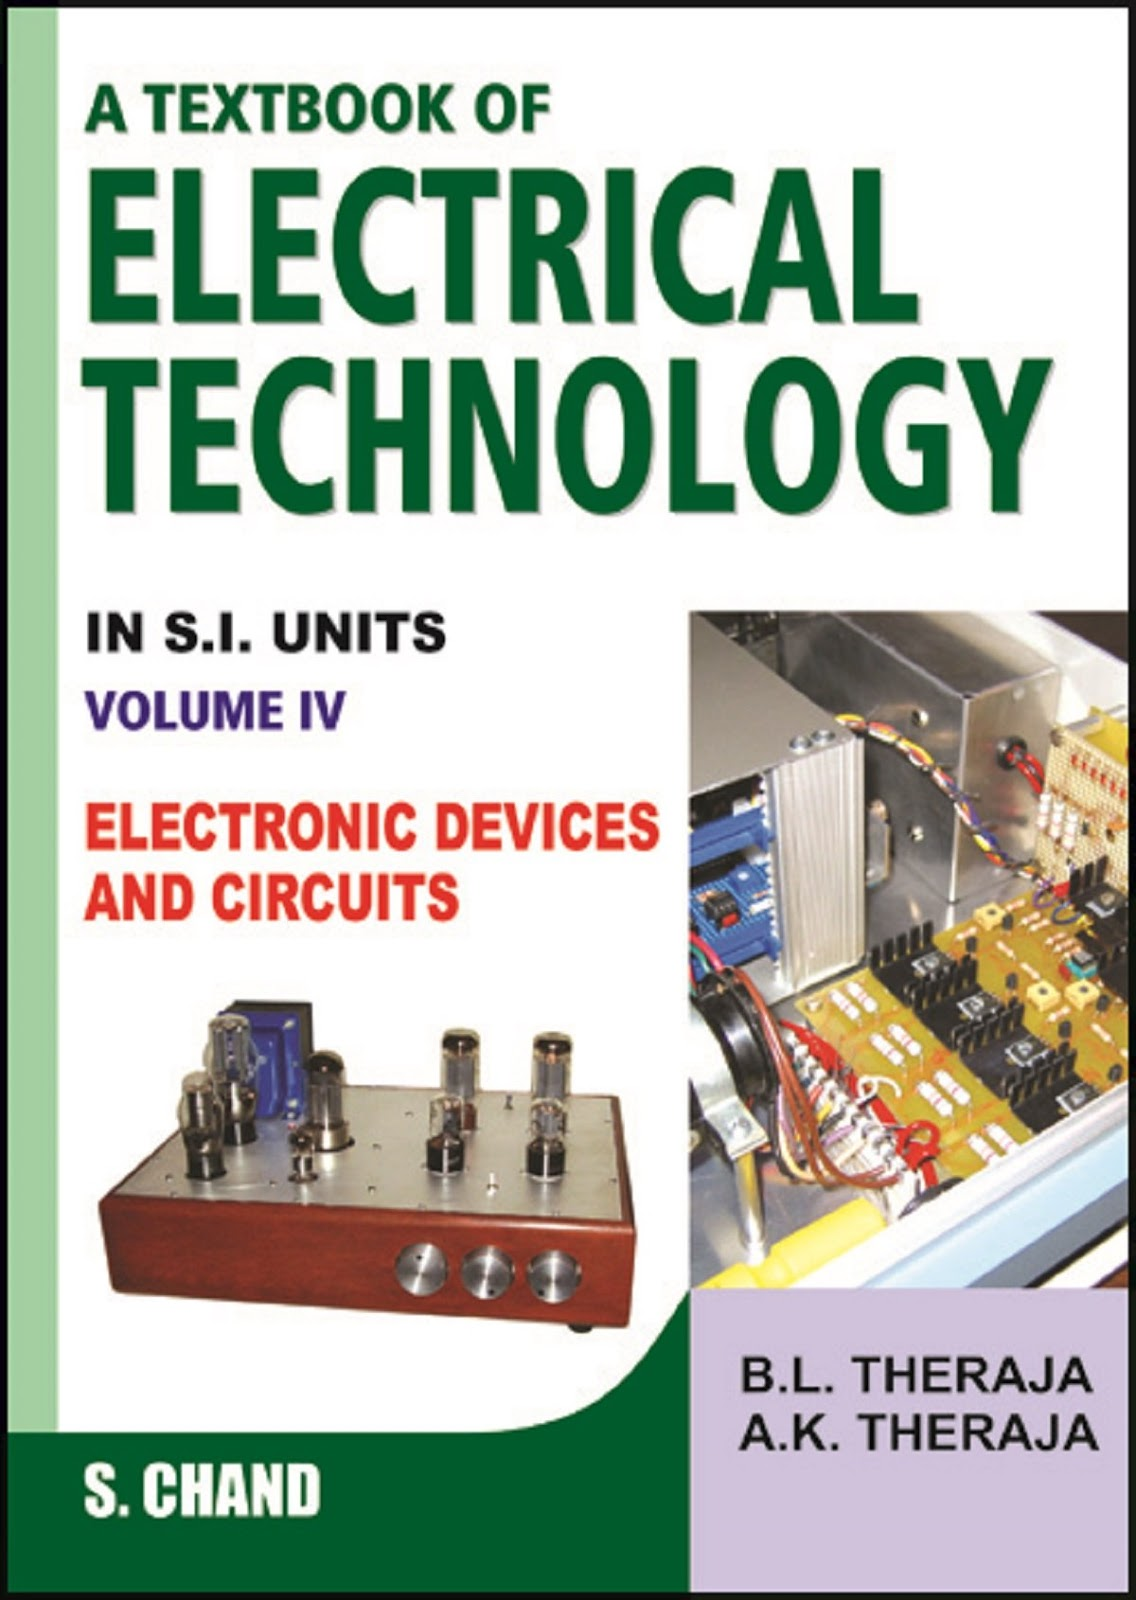 pdf book : A Textbook of Electrical Technology Volume IV